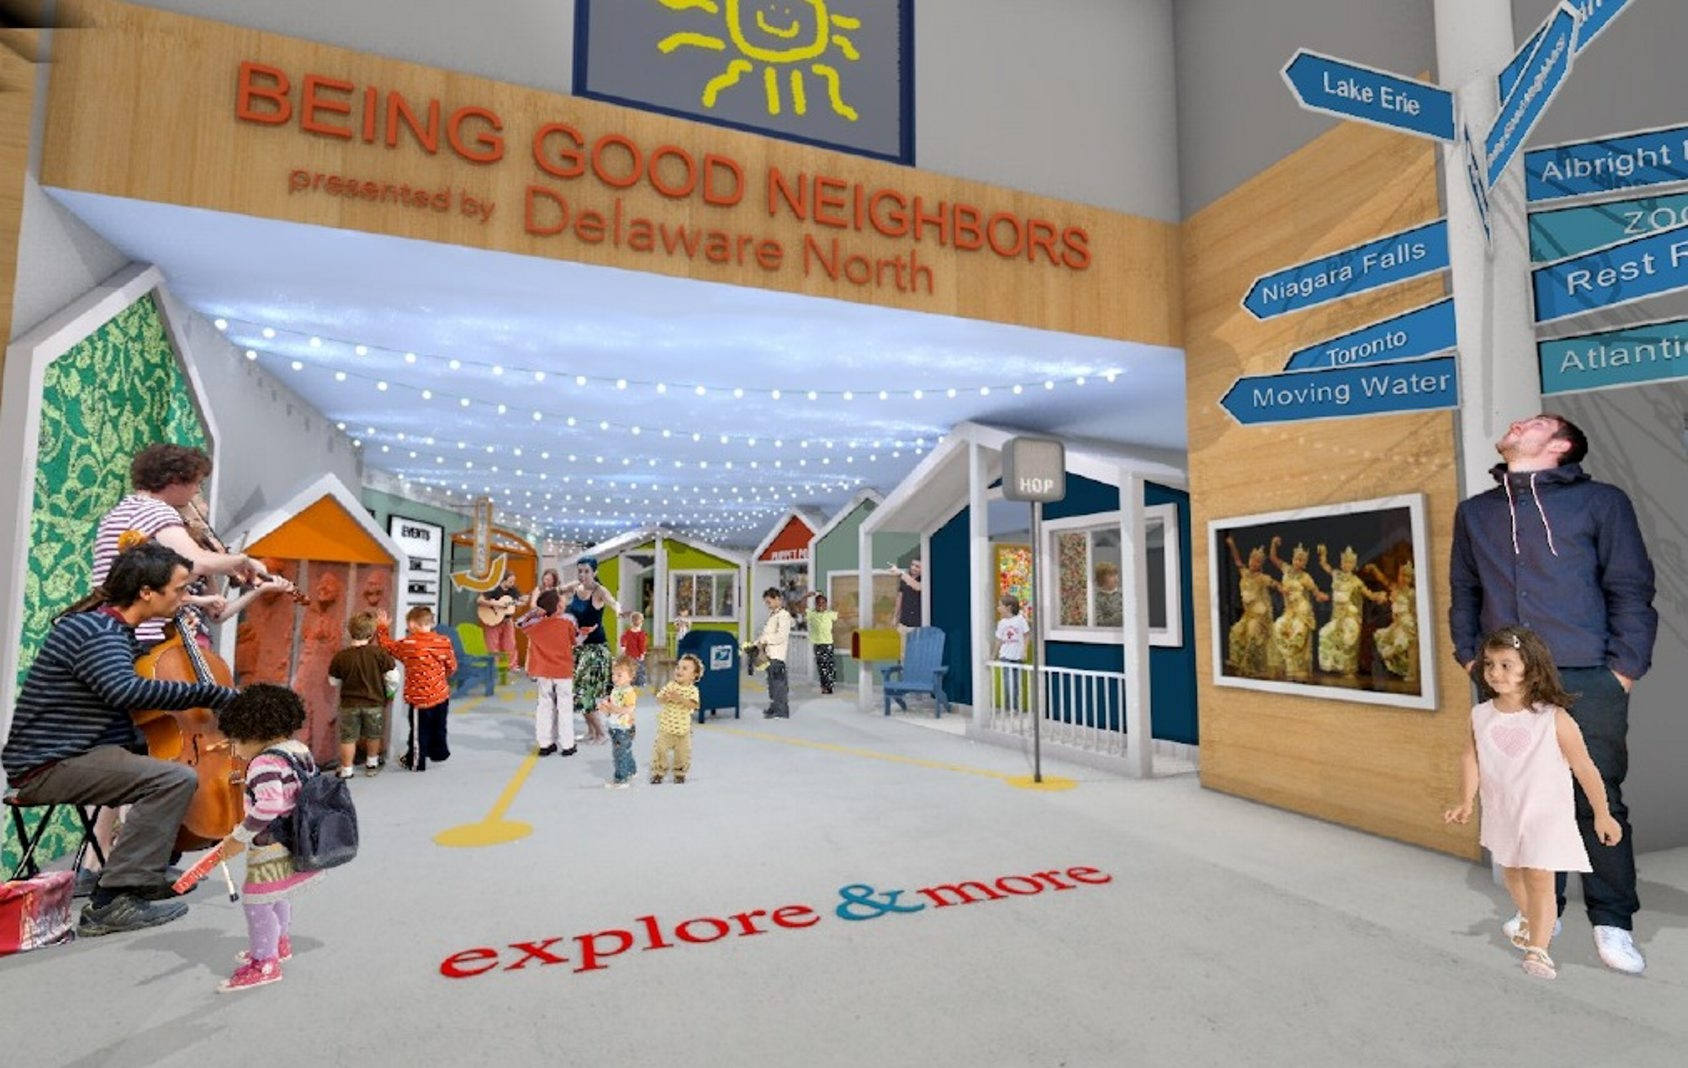 An artist's rendering of the proposed Explore & More Children's Museum's Being Good Neighbors play zone, sponsored by Delaware North with a $1 million donation. The museum is expected to open in Canalside in 2018.